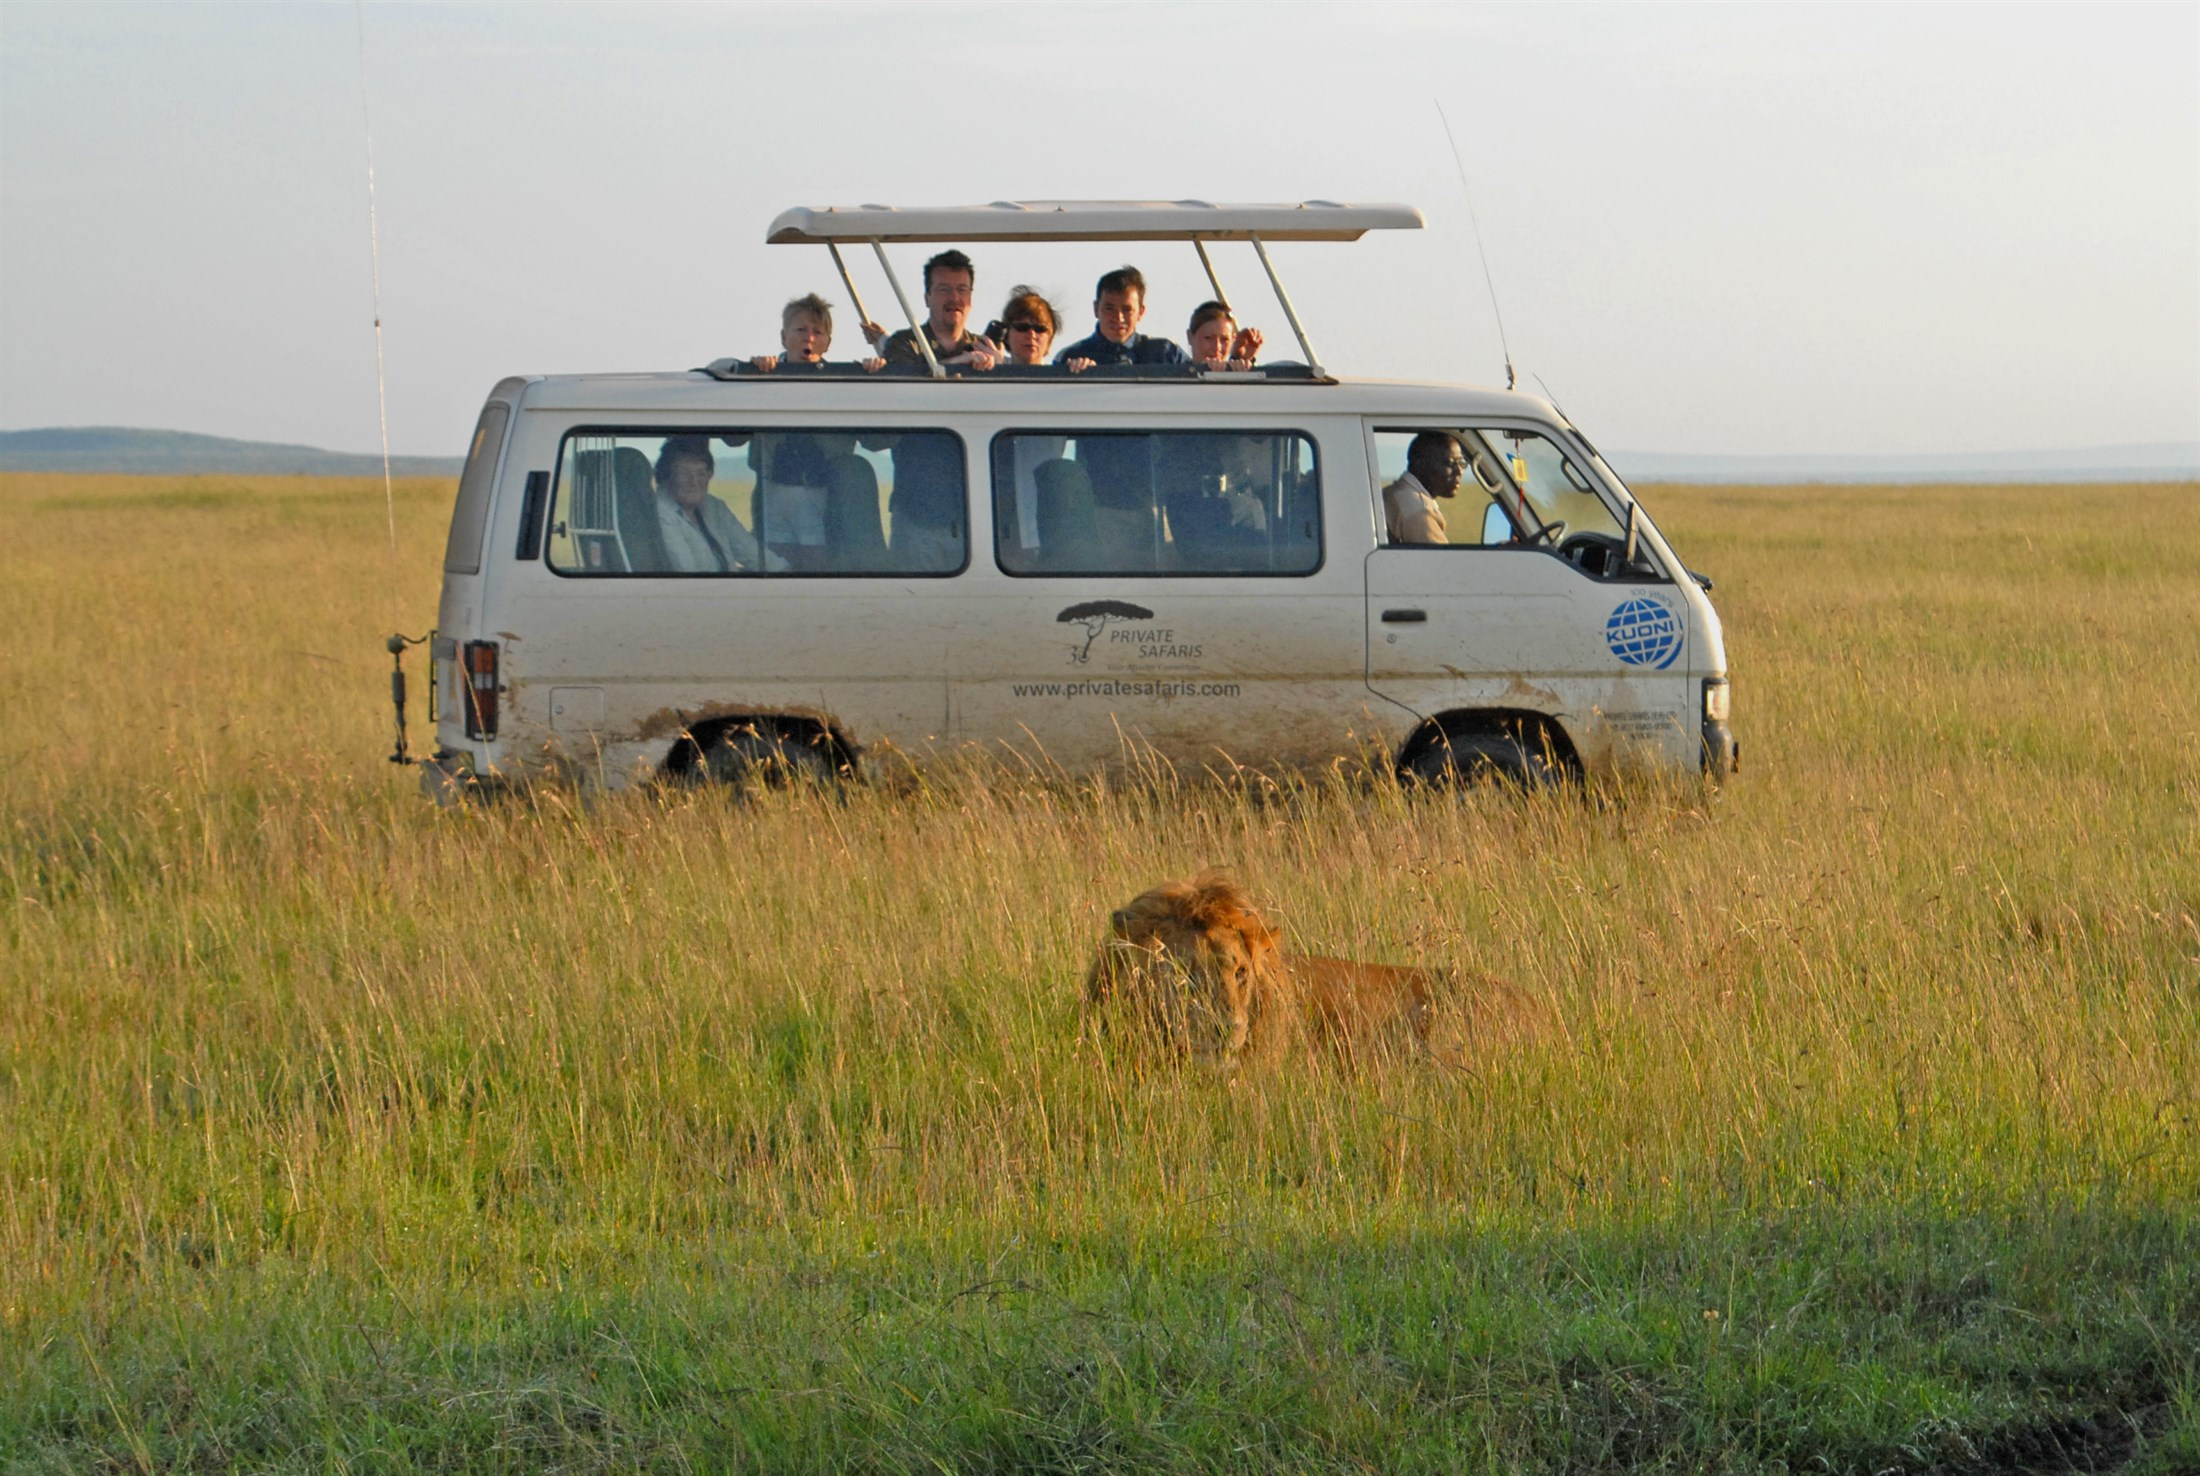 Masai Mara Reserve. Photo: Peter Prokosch